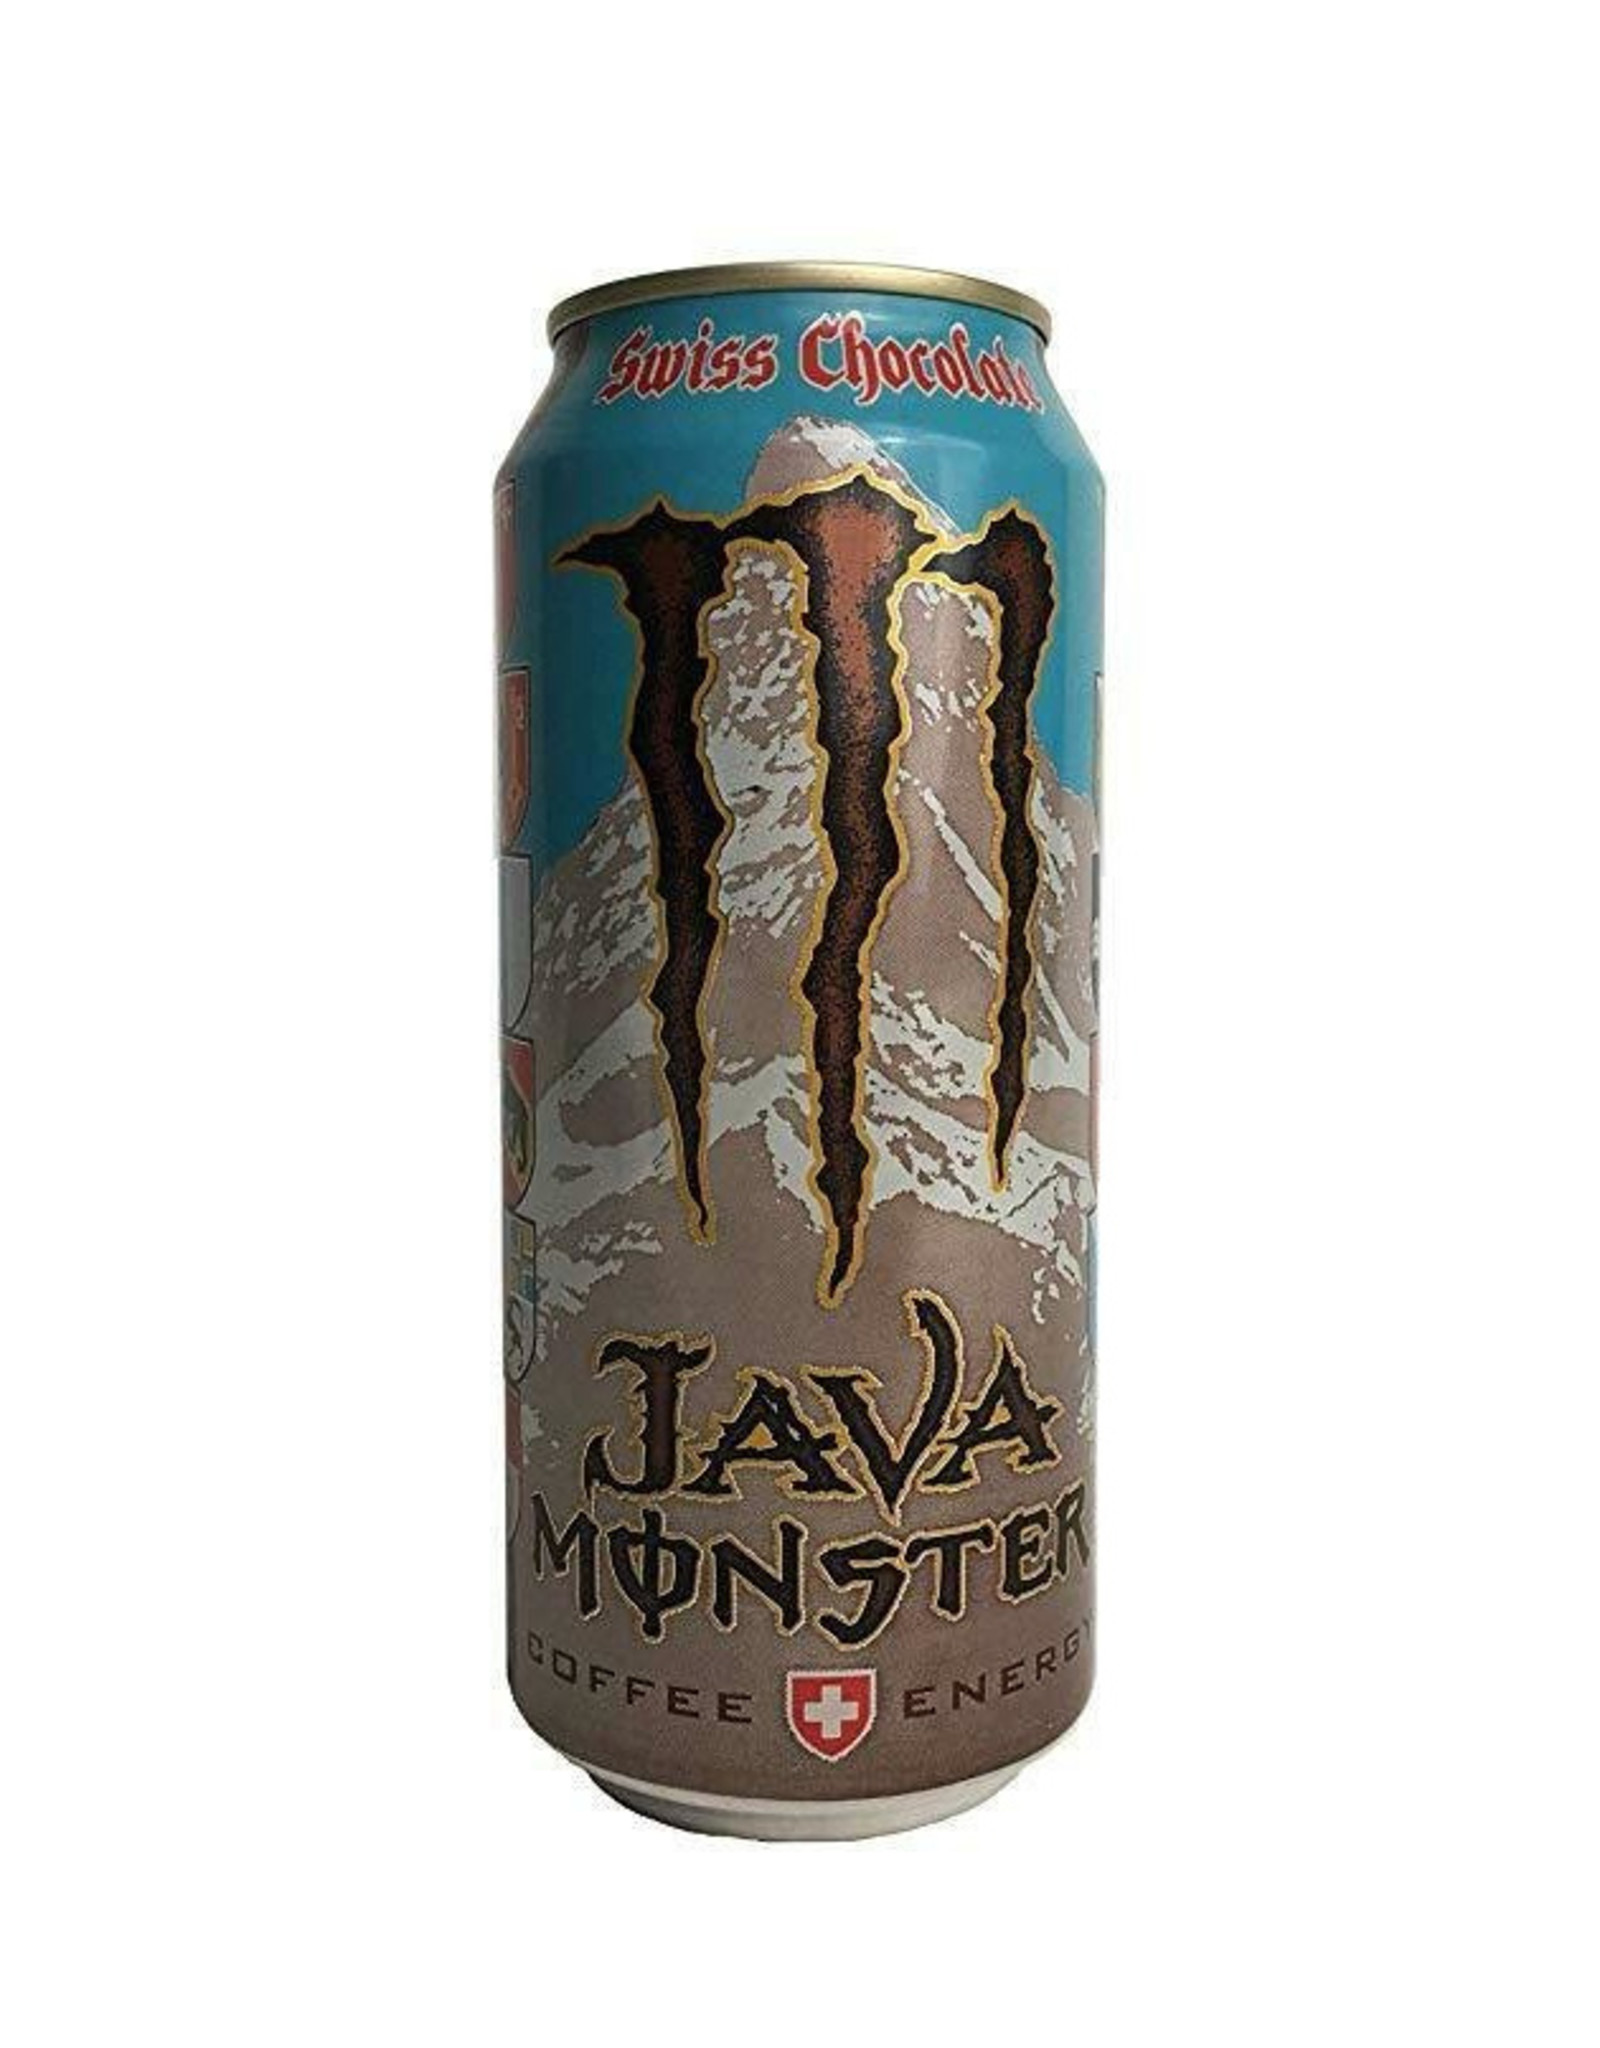 Monster Java Swiss Chocolate (import) - 443ml